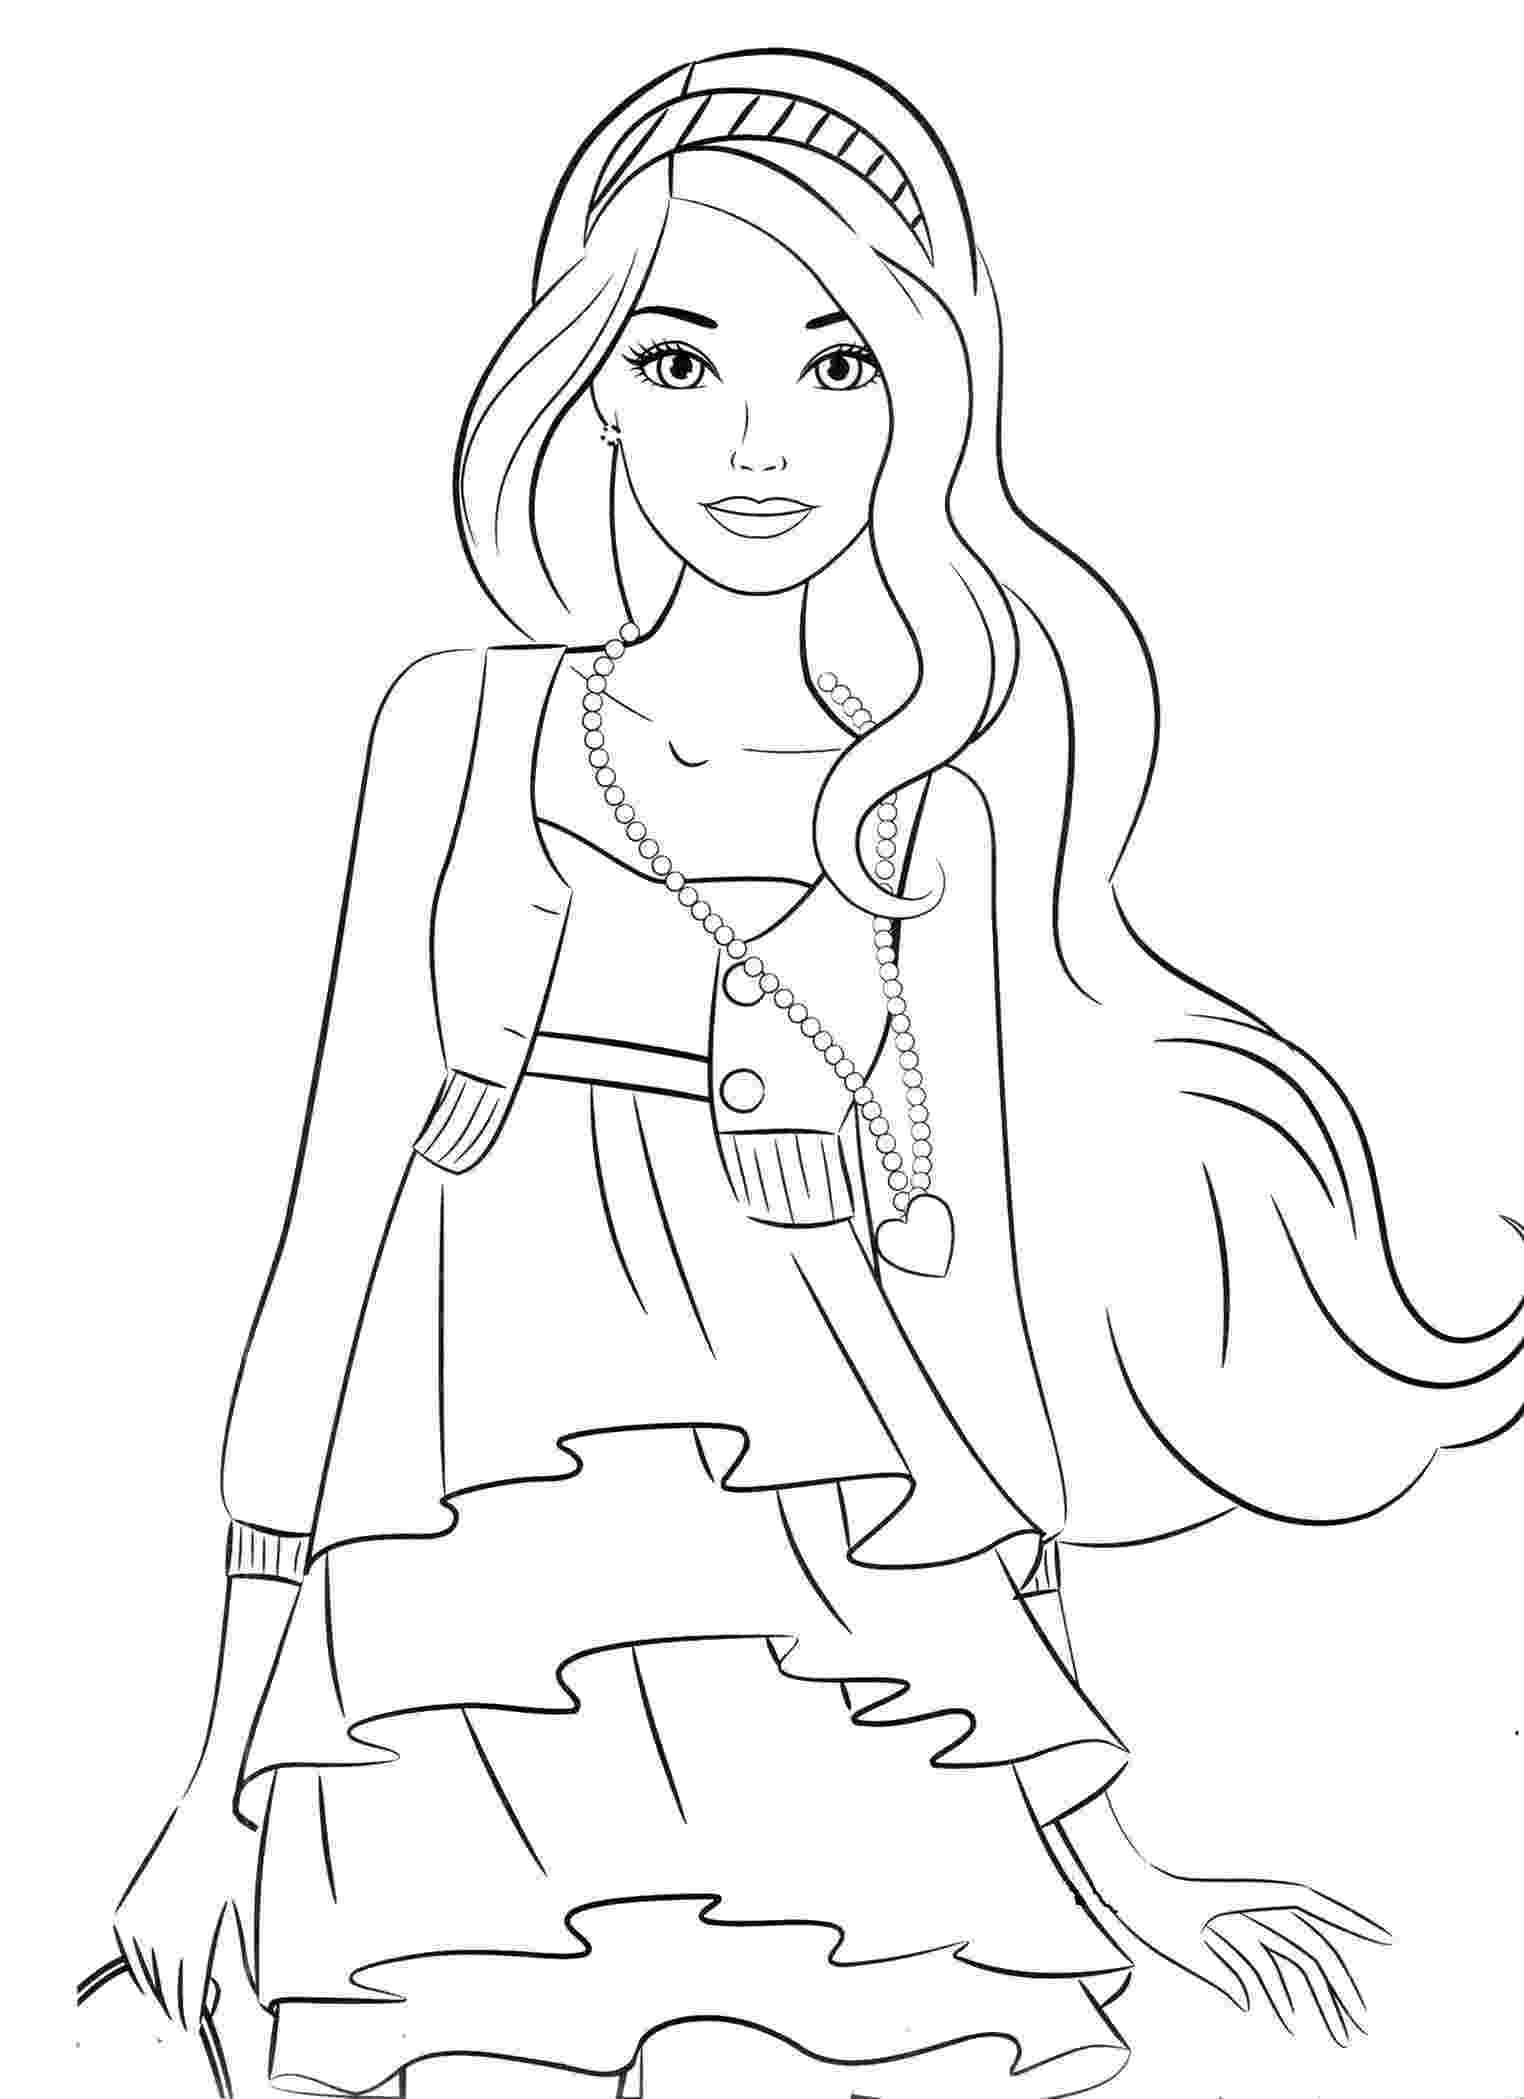 cool coloring pages for 9 year olds coloring pages for 10 year olds year olds pages for 9 cool coloring